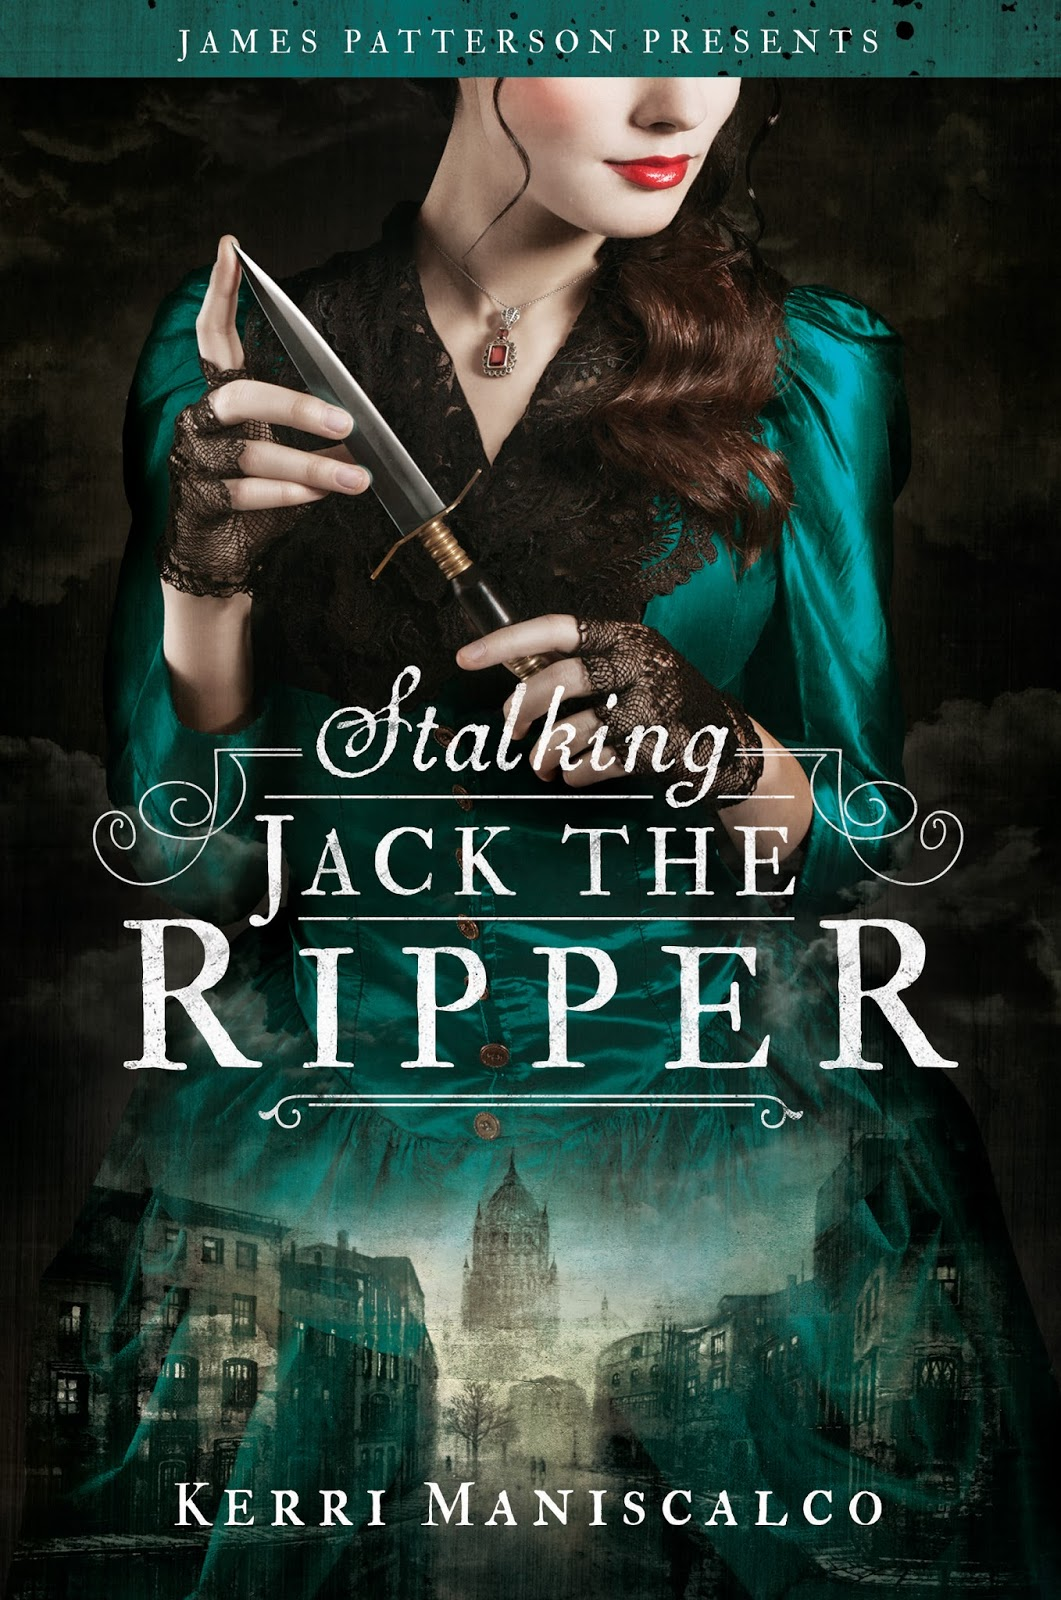 Stalking Jack the Ripper (Stalking Jack the Ripper, #1) by Kerri Maniscalco